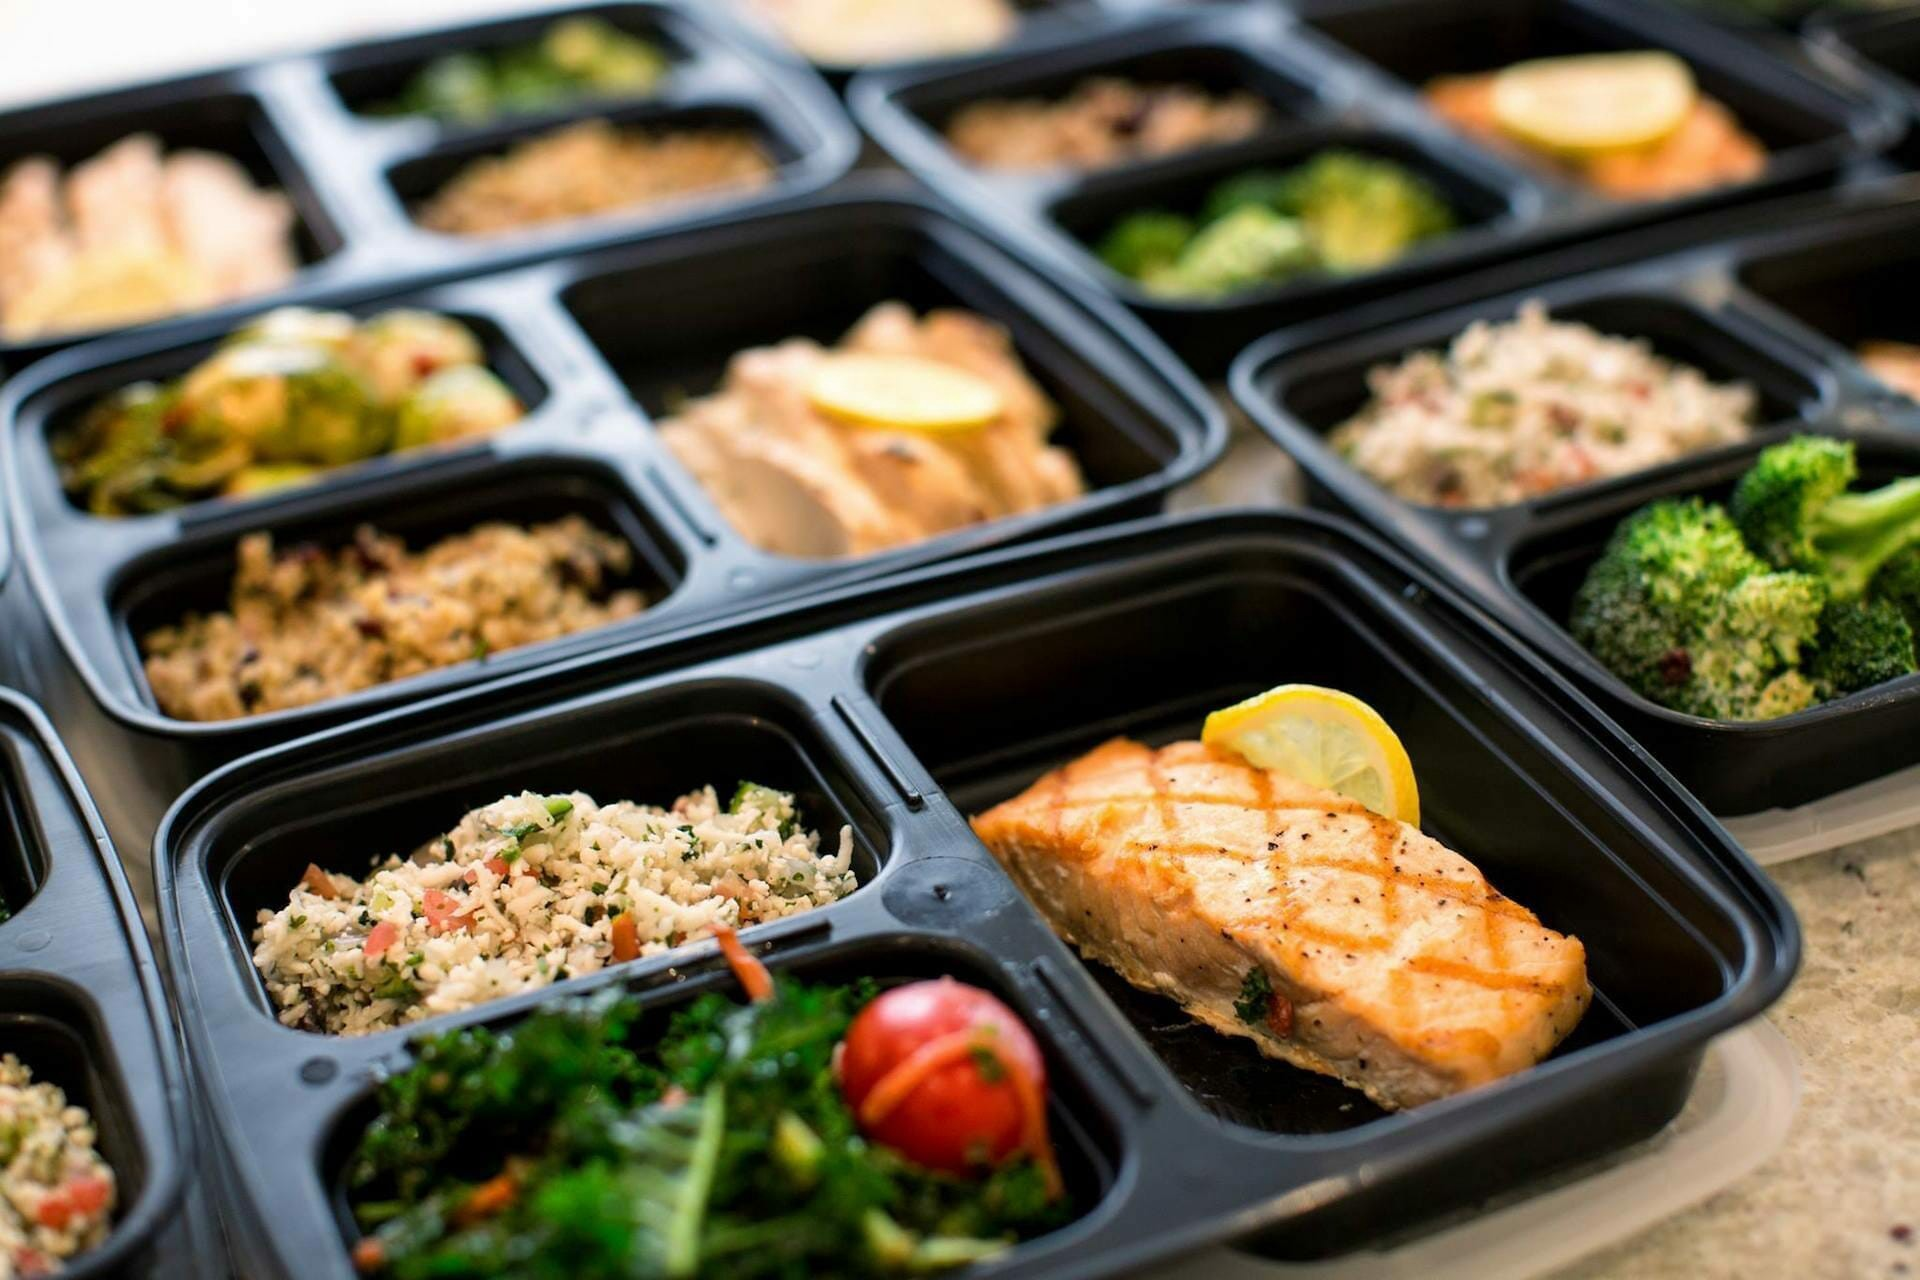 These Are the Best Meal Delivery Services